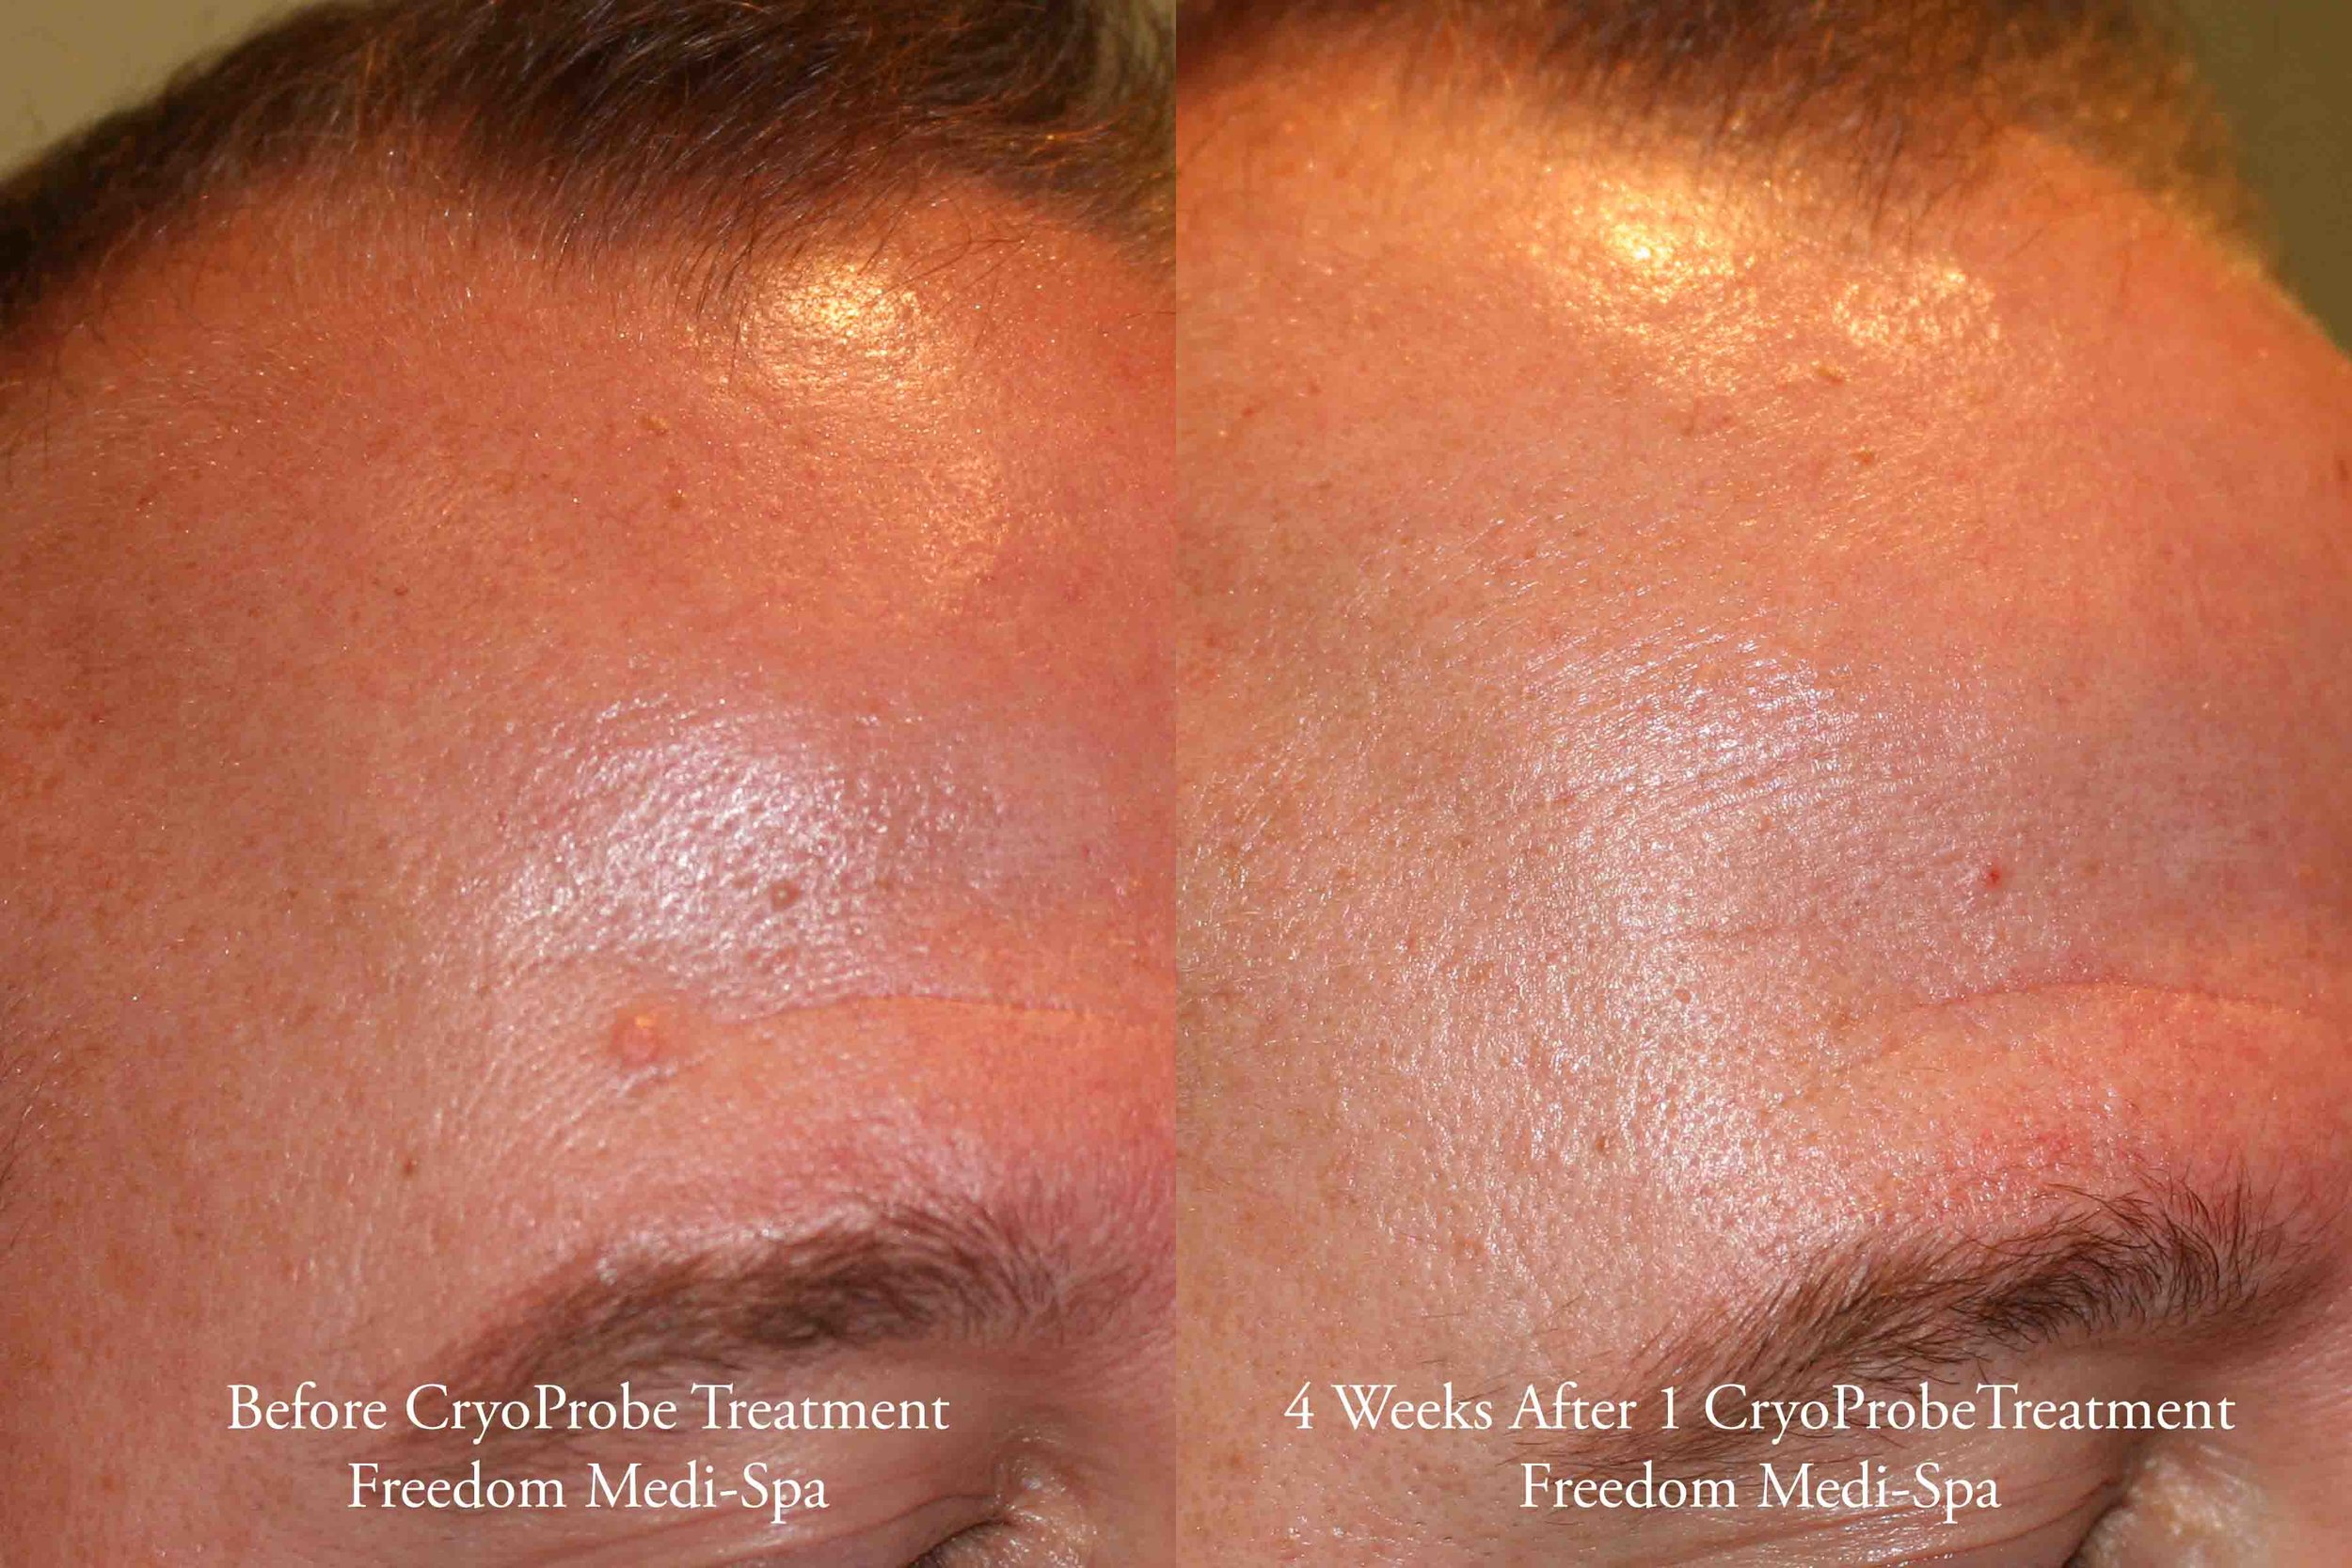 CryoProbe Before and After Nov 2016.jpg